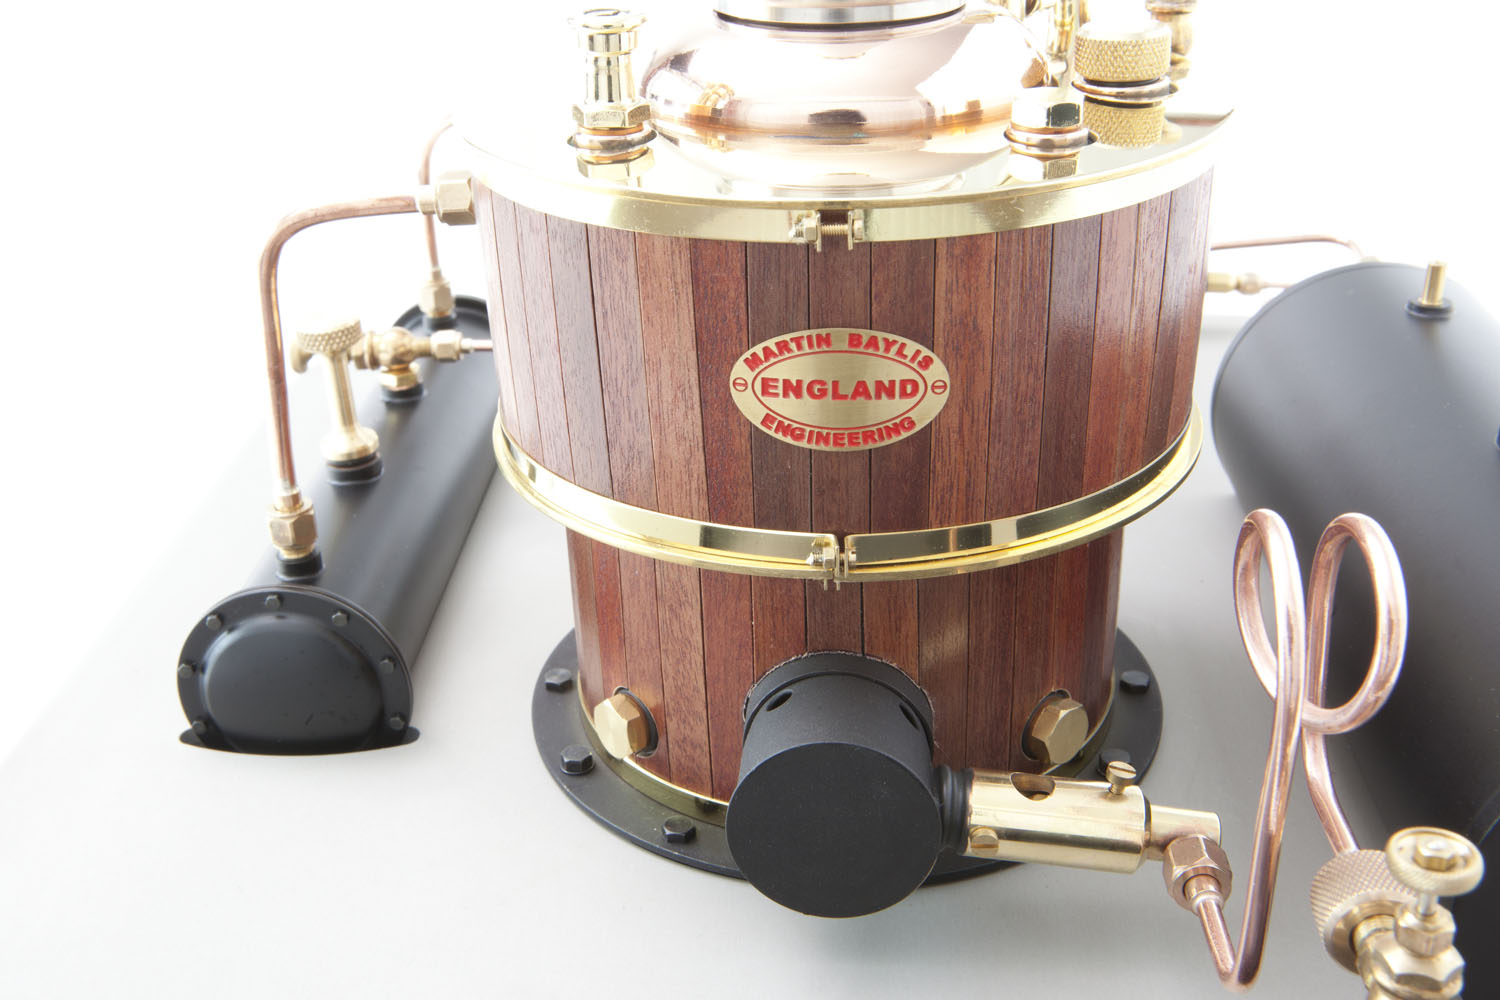 The model boiler features wooden cladding and brass bands. The ceramic burner and quick release gas fitting can be seen. Visible is the simulated flanged and bolted end to the separator tank adding an additional note of authenticity.